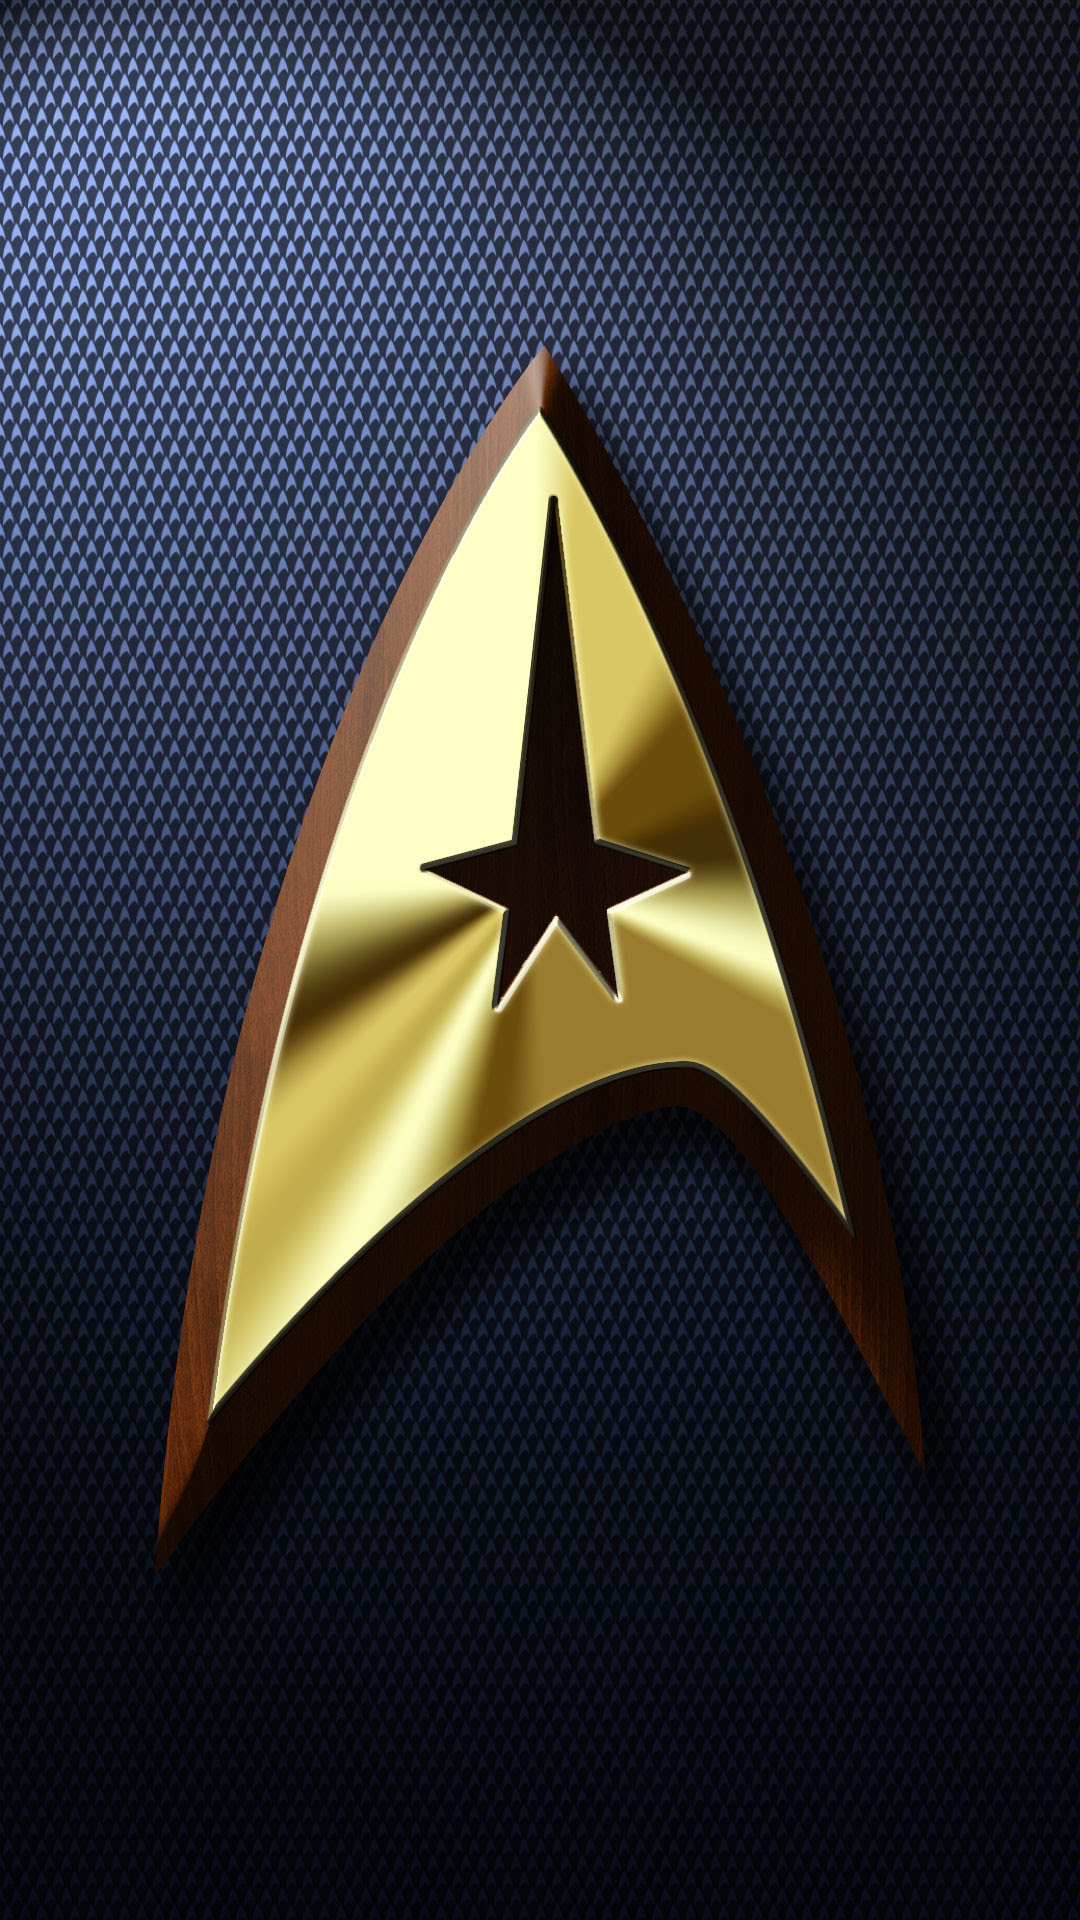 Star Trek Cell Phone Wallpaper 69 Images